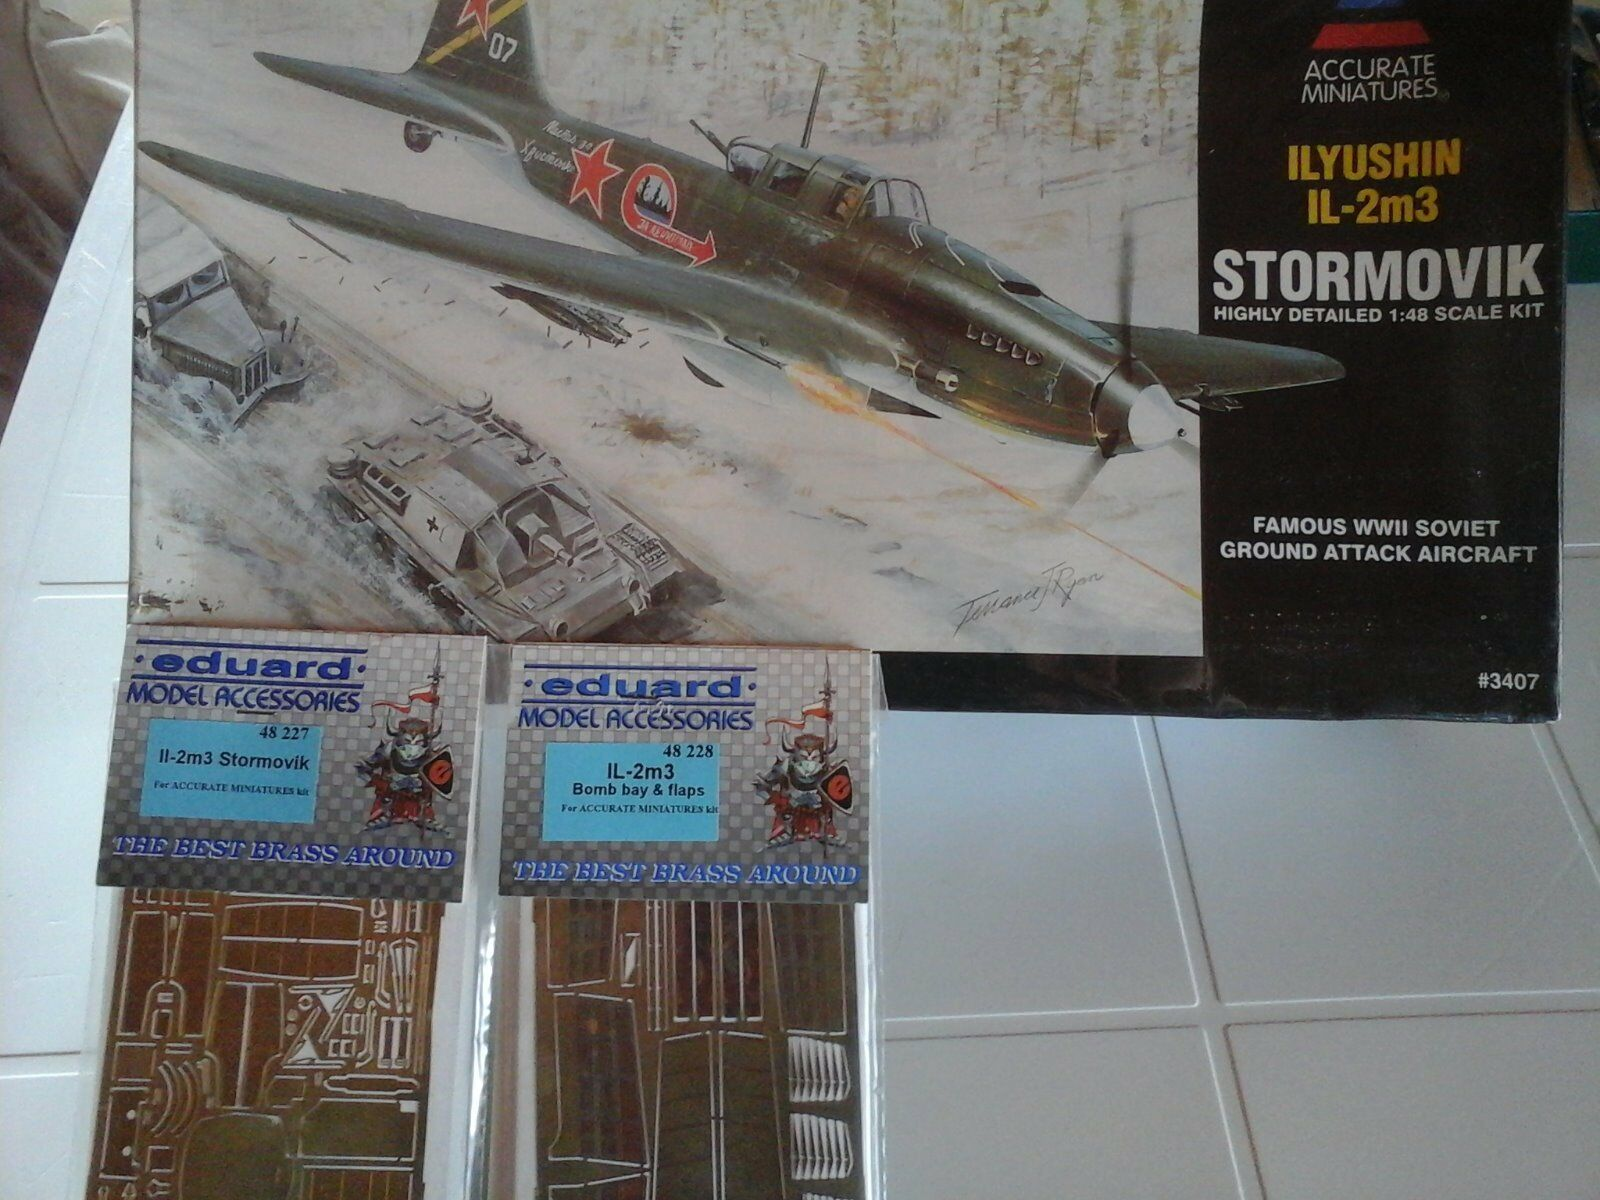 ILYUSHIN IL-2M3 STORMOVIK 1 48 SCALE ACCURATE MINIATURES MODEL+N.2 PHOTOETCHED P